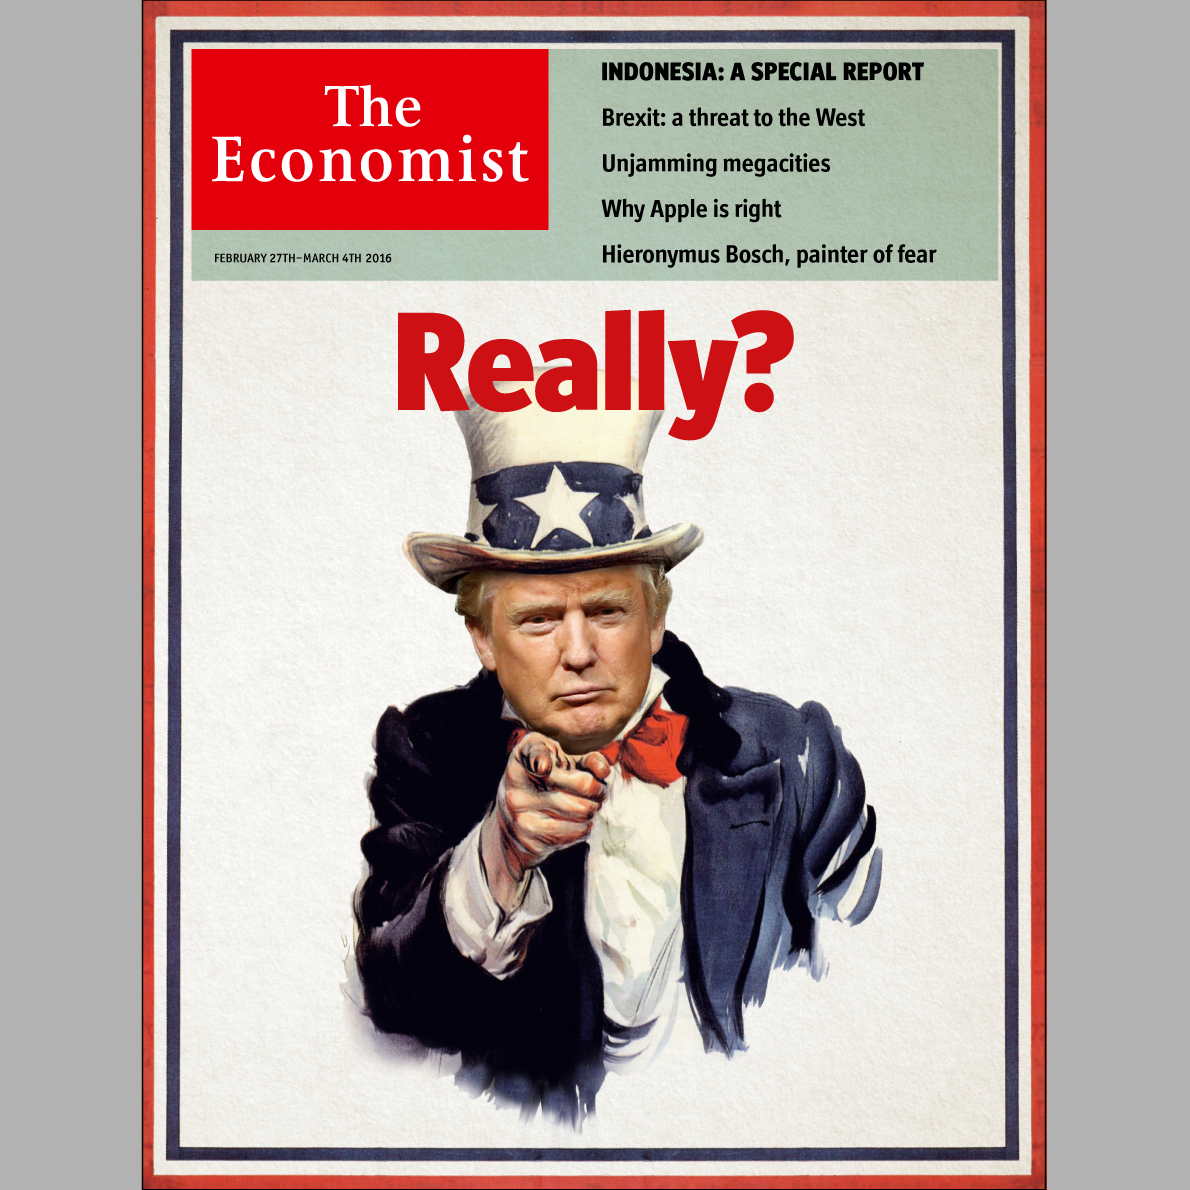 Donald Trump's rise seen through The Economist's covers ...